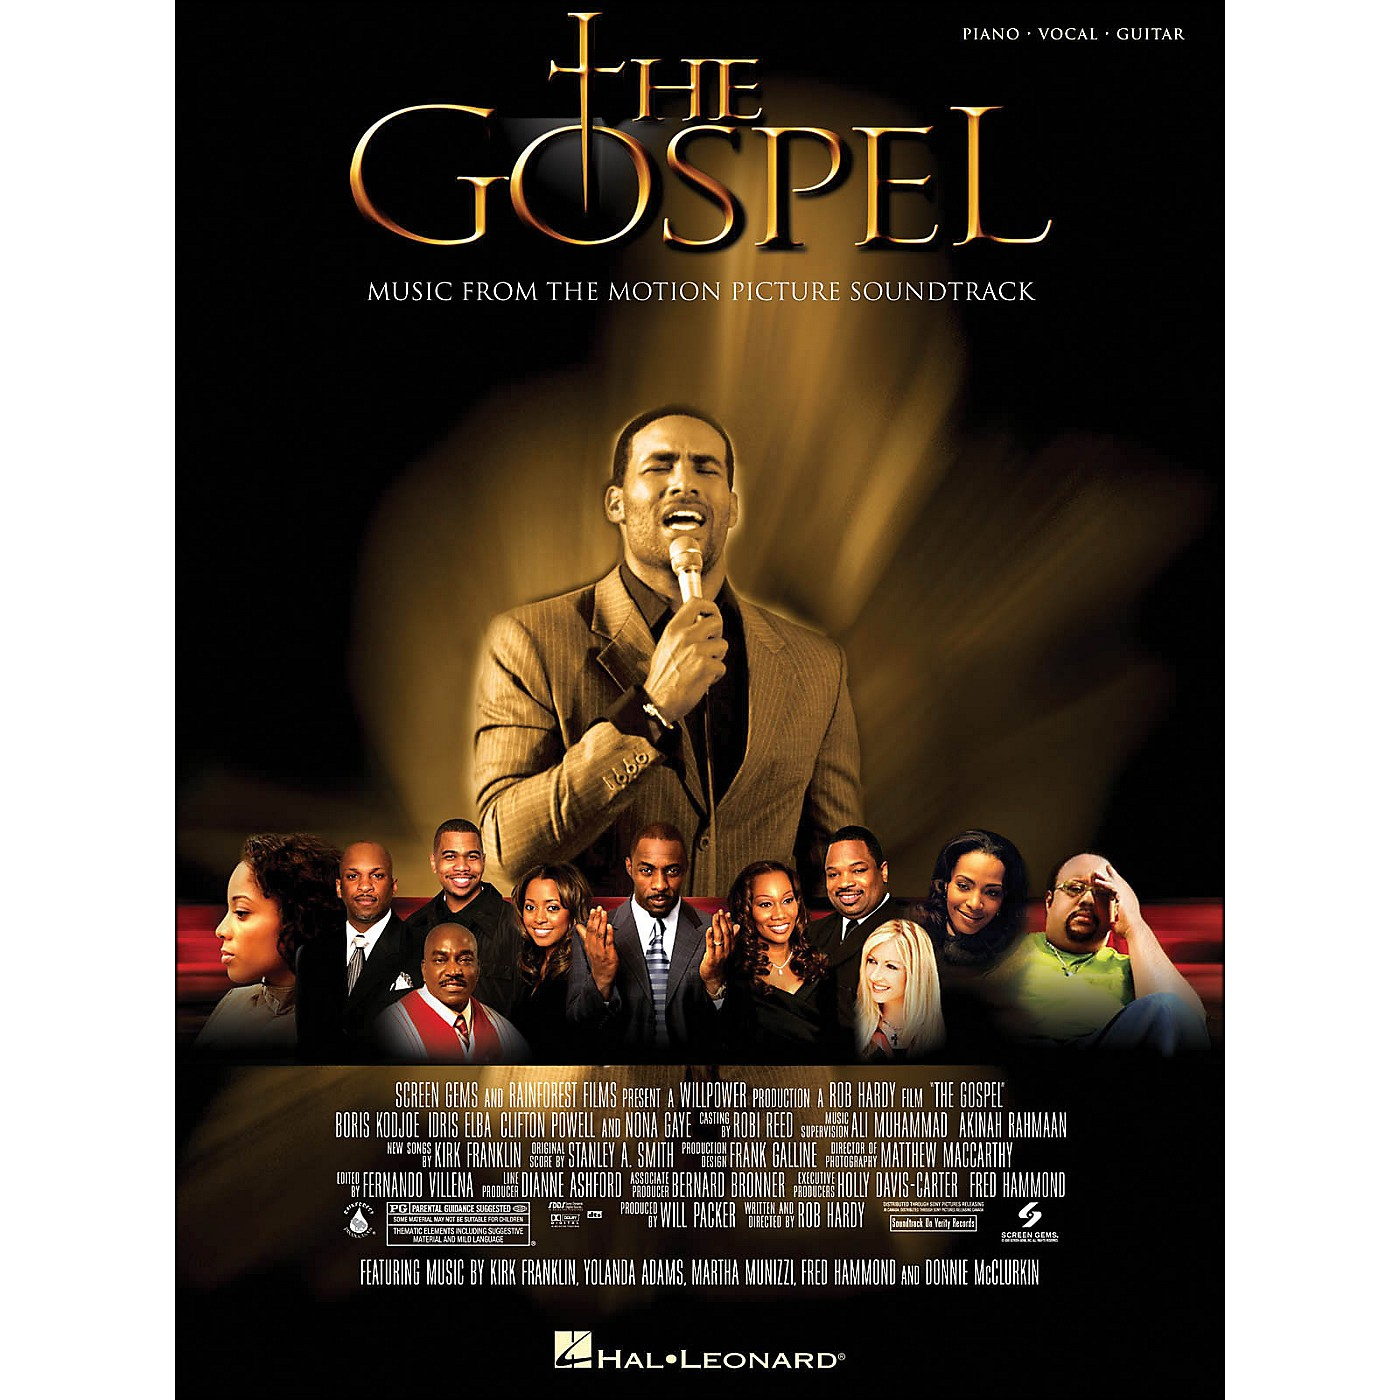 Hal Leonard The Gospel Music From The Motion Picture Soundtrack arranged for piano, vocal, and guitar (P/V/G) thumbnail